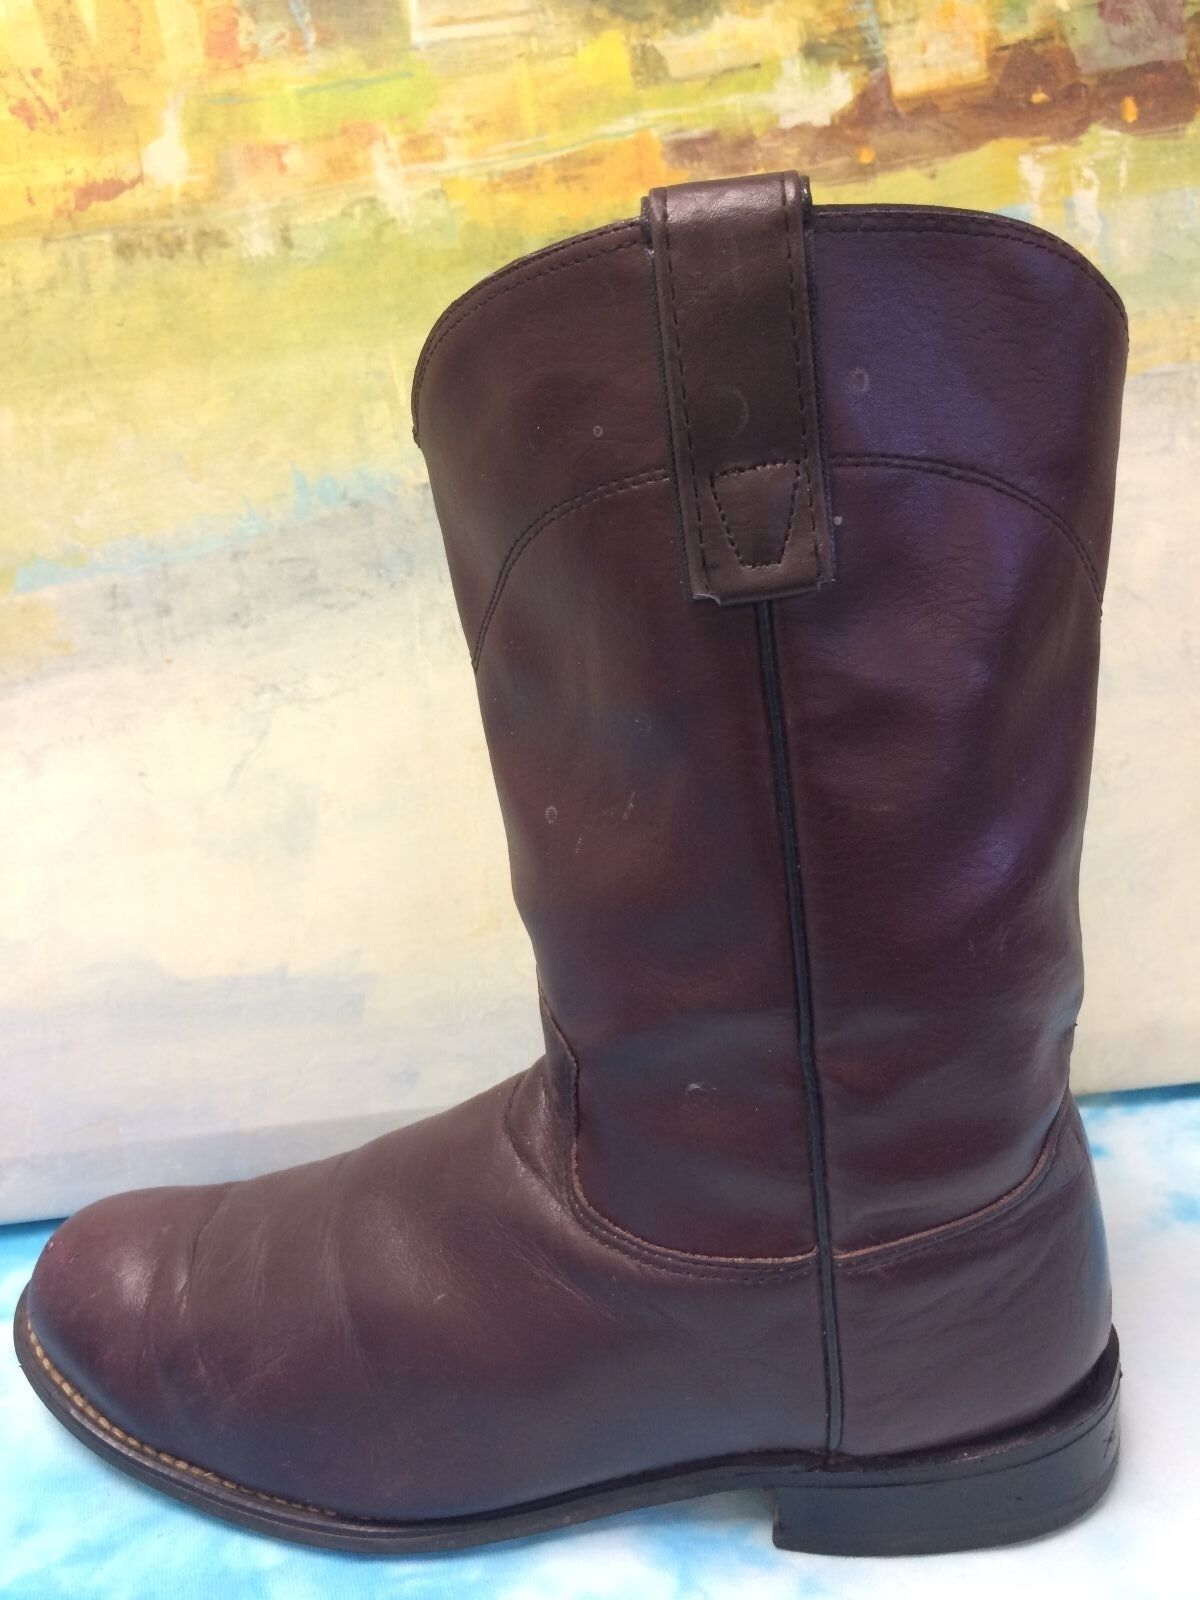 TEXAS BOOTS LADIES BURGUNDY ROPER BOOTS 4453 WESTERN8 M made in USA